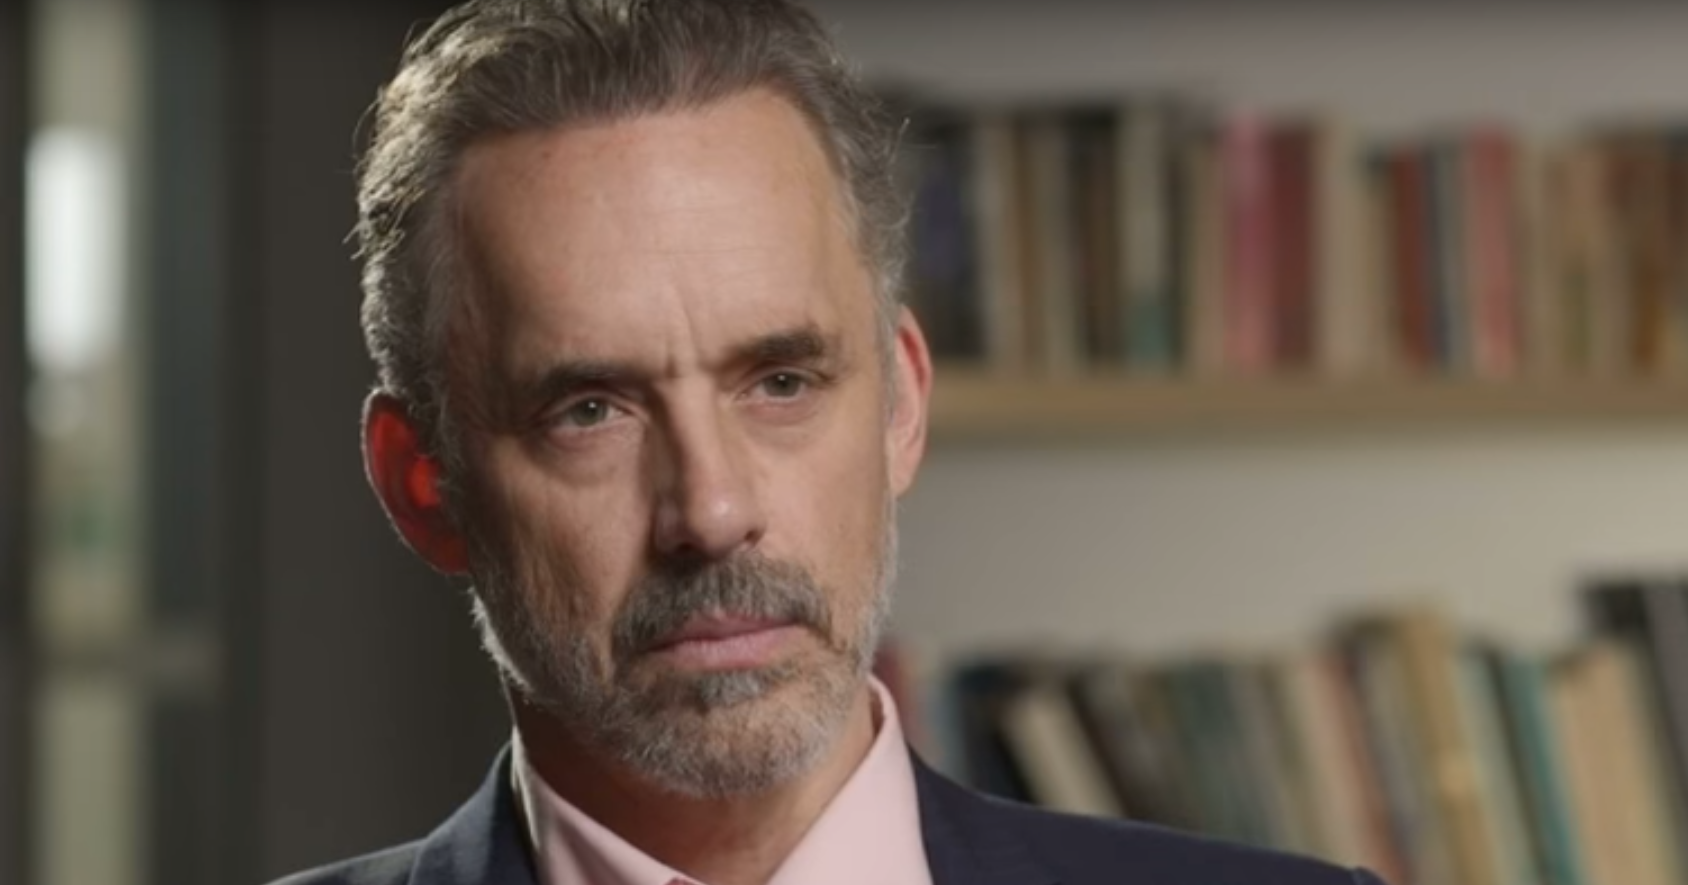 jordan peterson - Jordan Peterson - Crazy - Quote